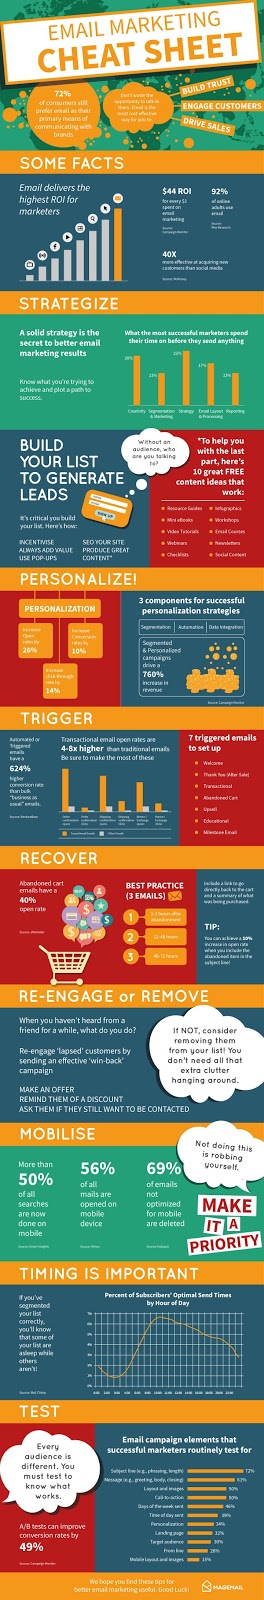 infografia-trucos-para-triunfar-email-marketing